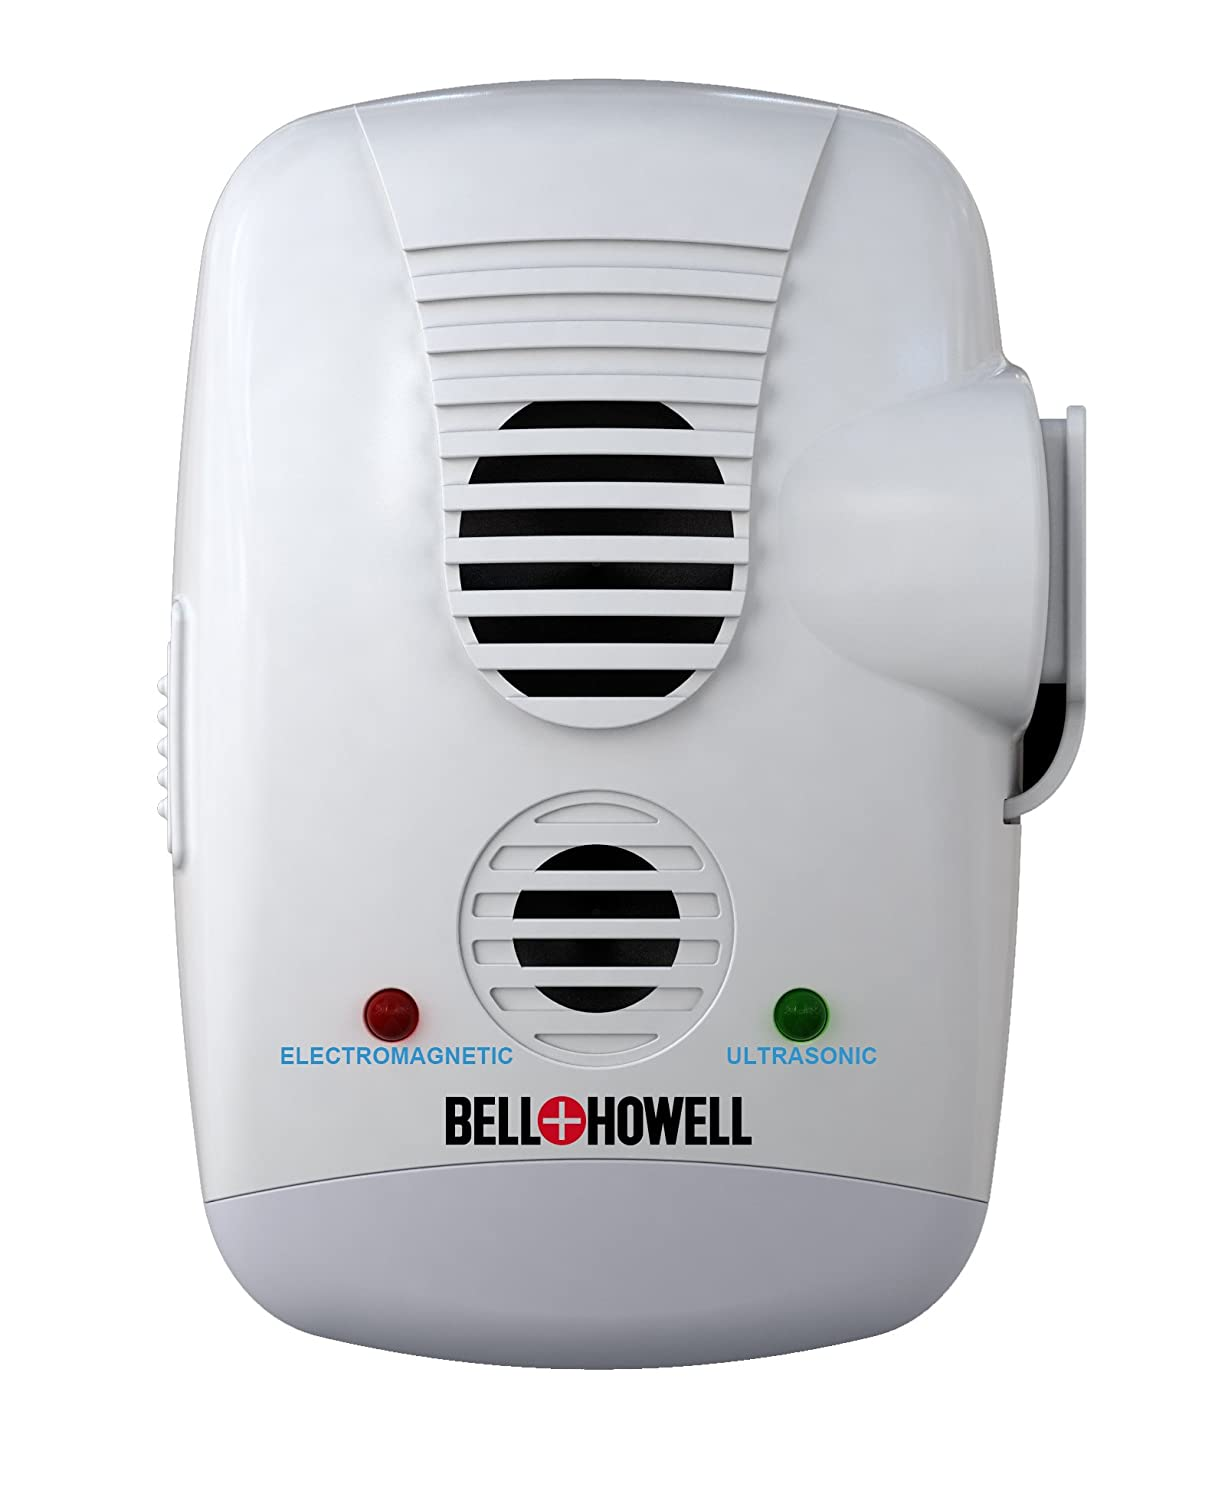 Bell + Howell Ultrasonic Electromagnetic Pest Repeller with AC Outlet and Switch